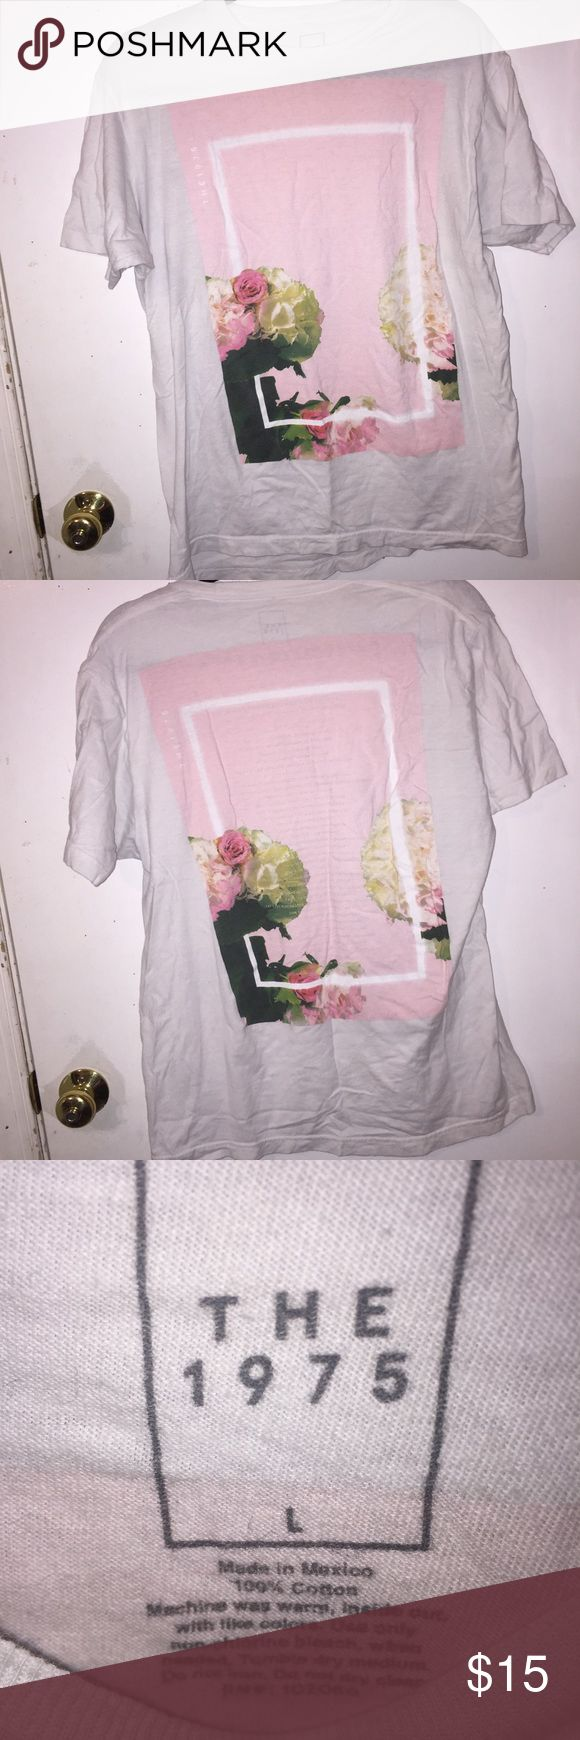 The 1975 pink roses tour shirt Gently used. Great condition. Price negotiable. No trades. Bundle to save money. The 1975 Tops Tees - Short Sleeve